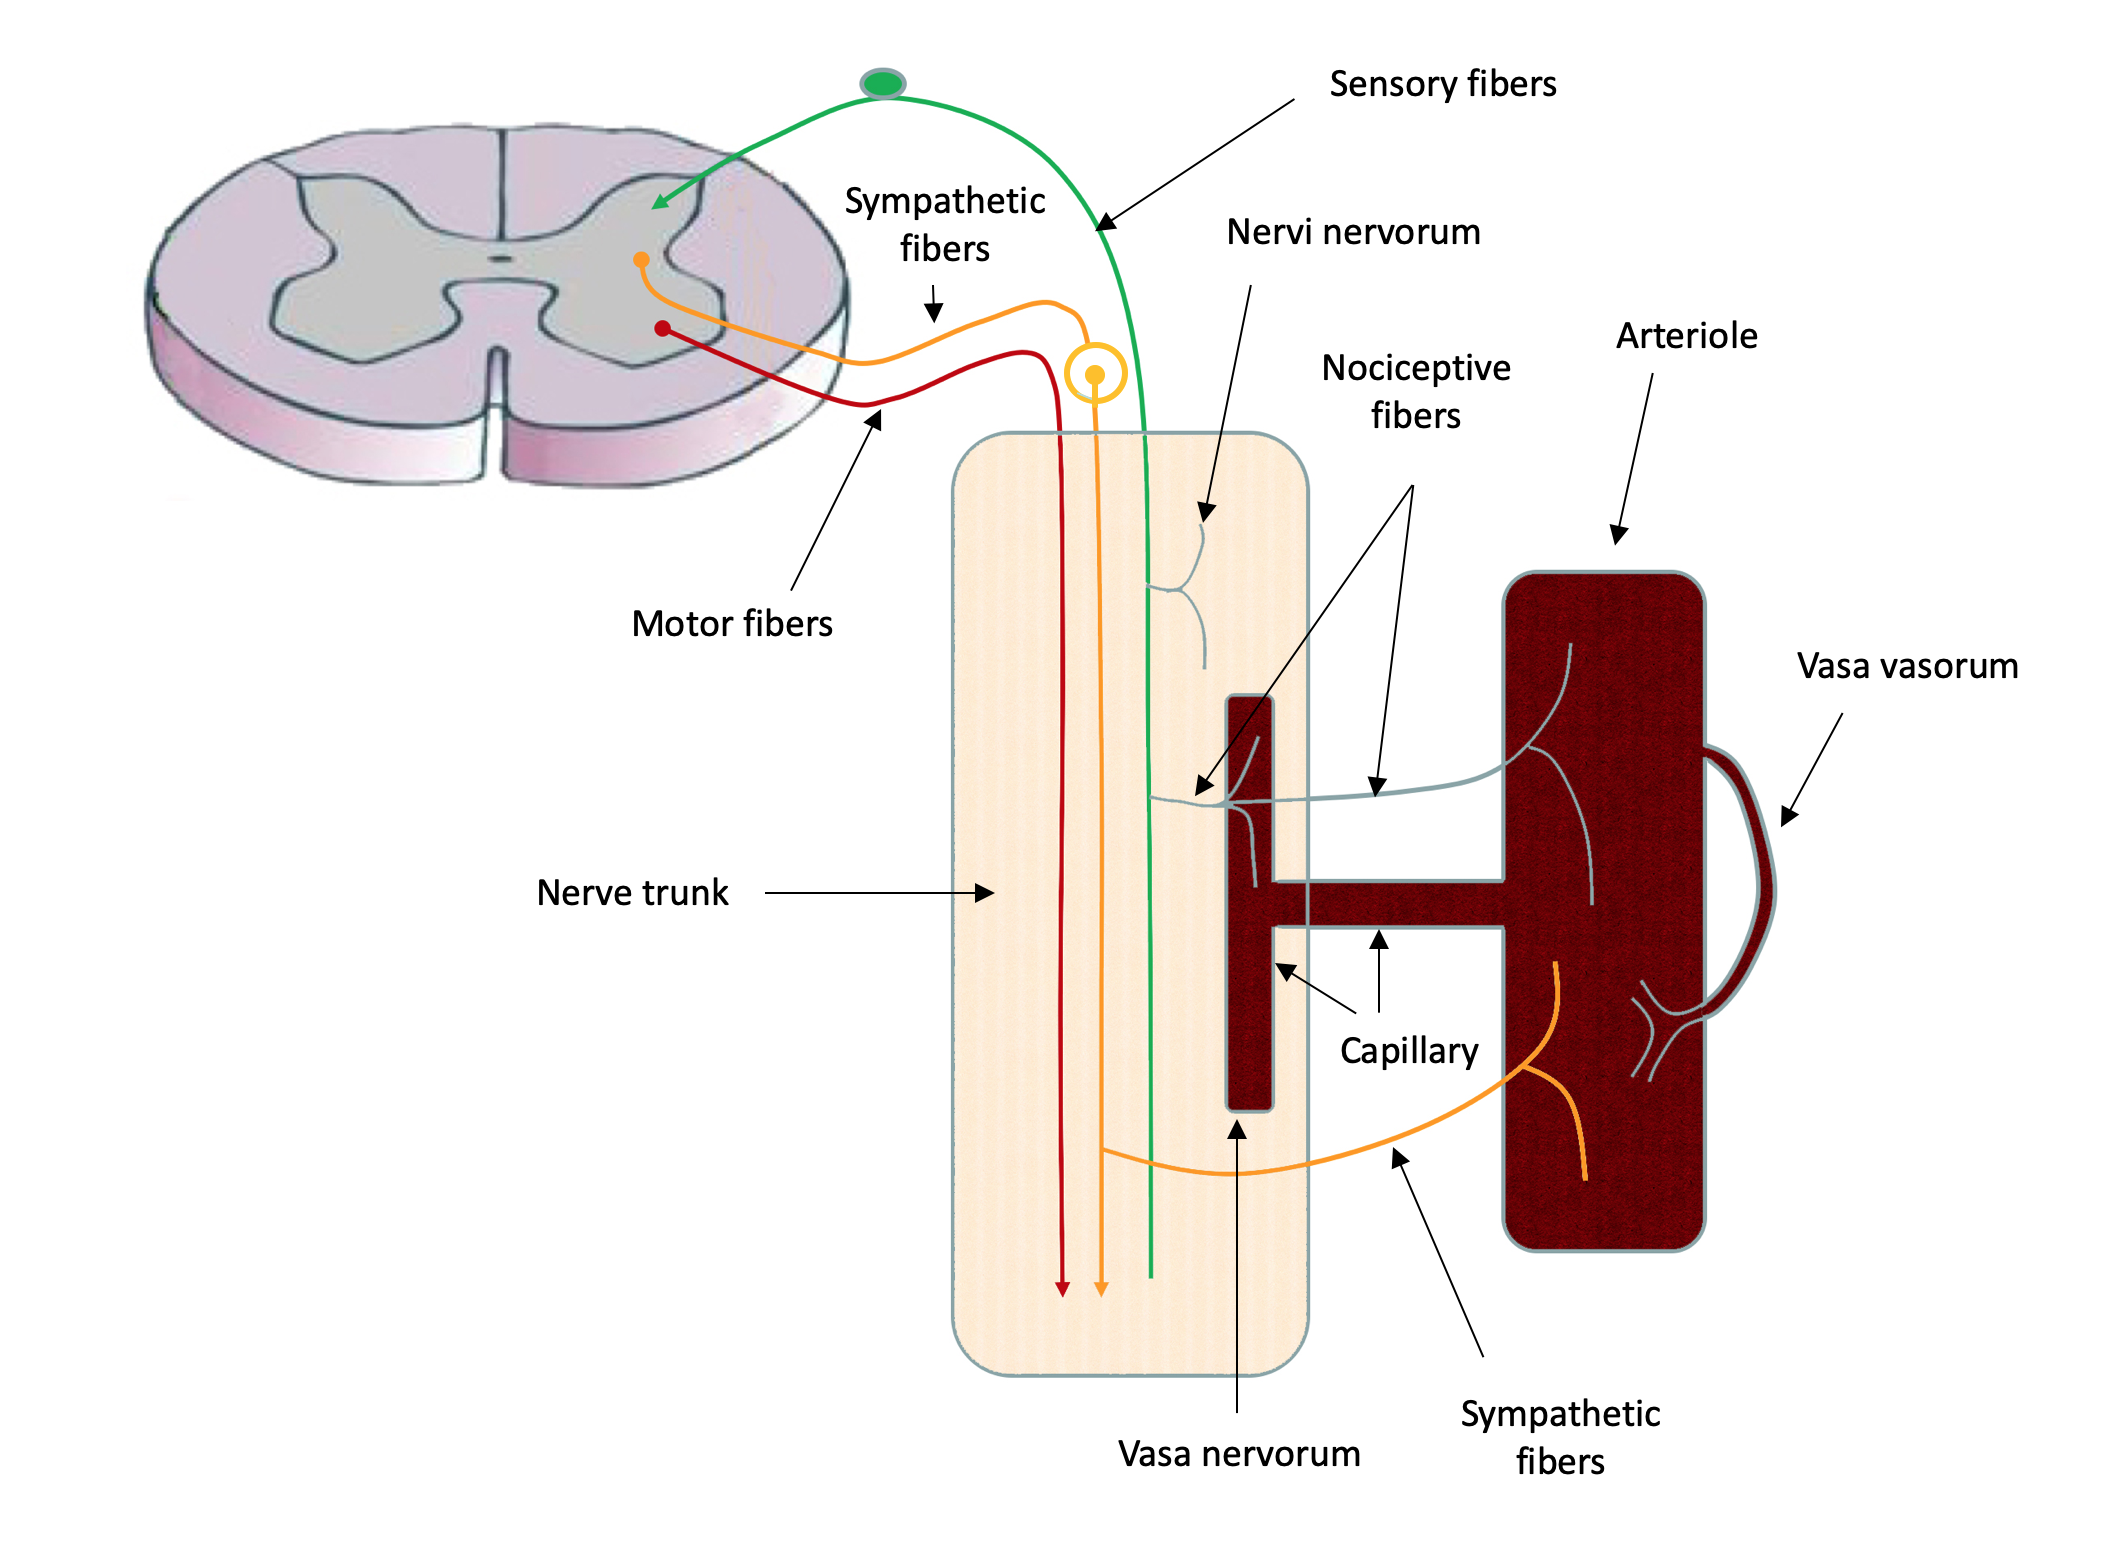 Noceptive from blood vessels and nerves.